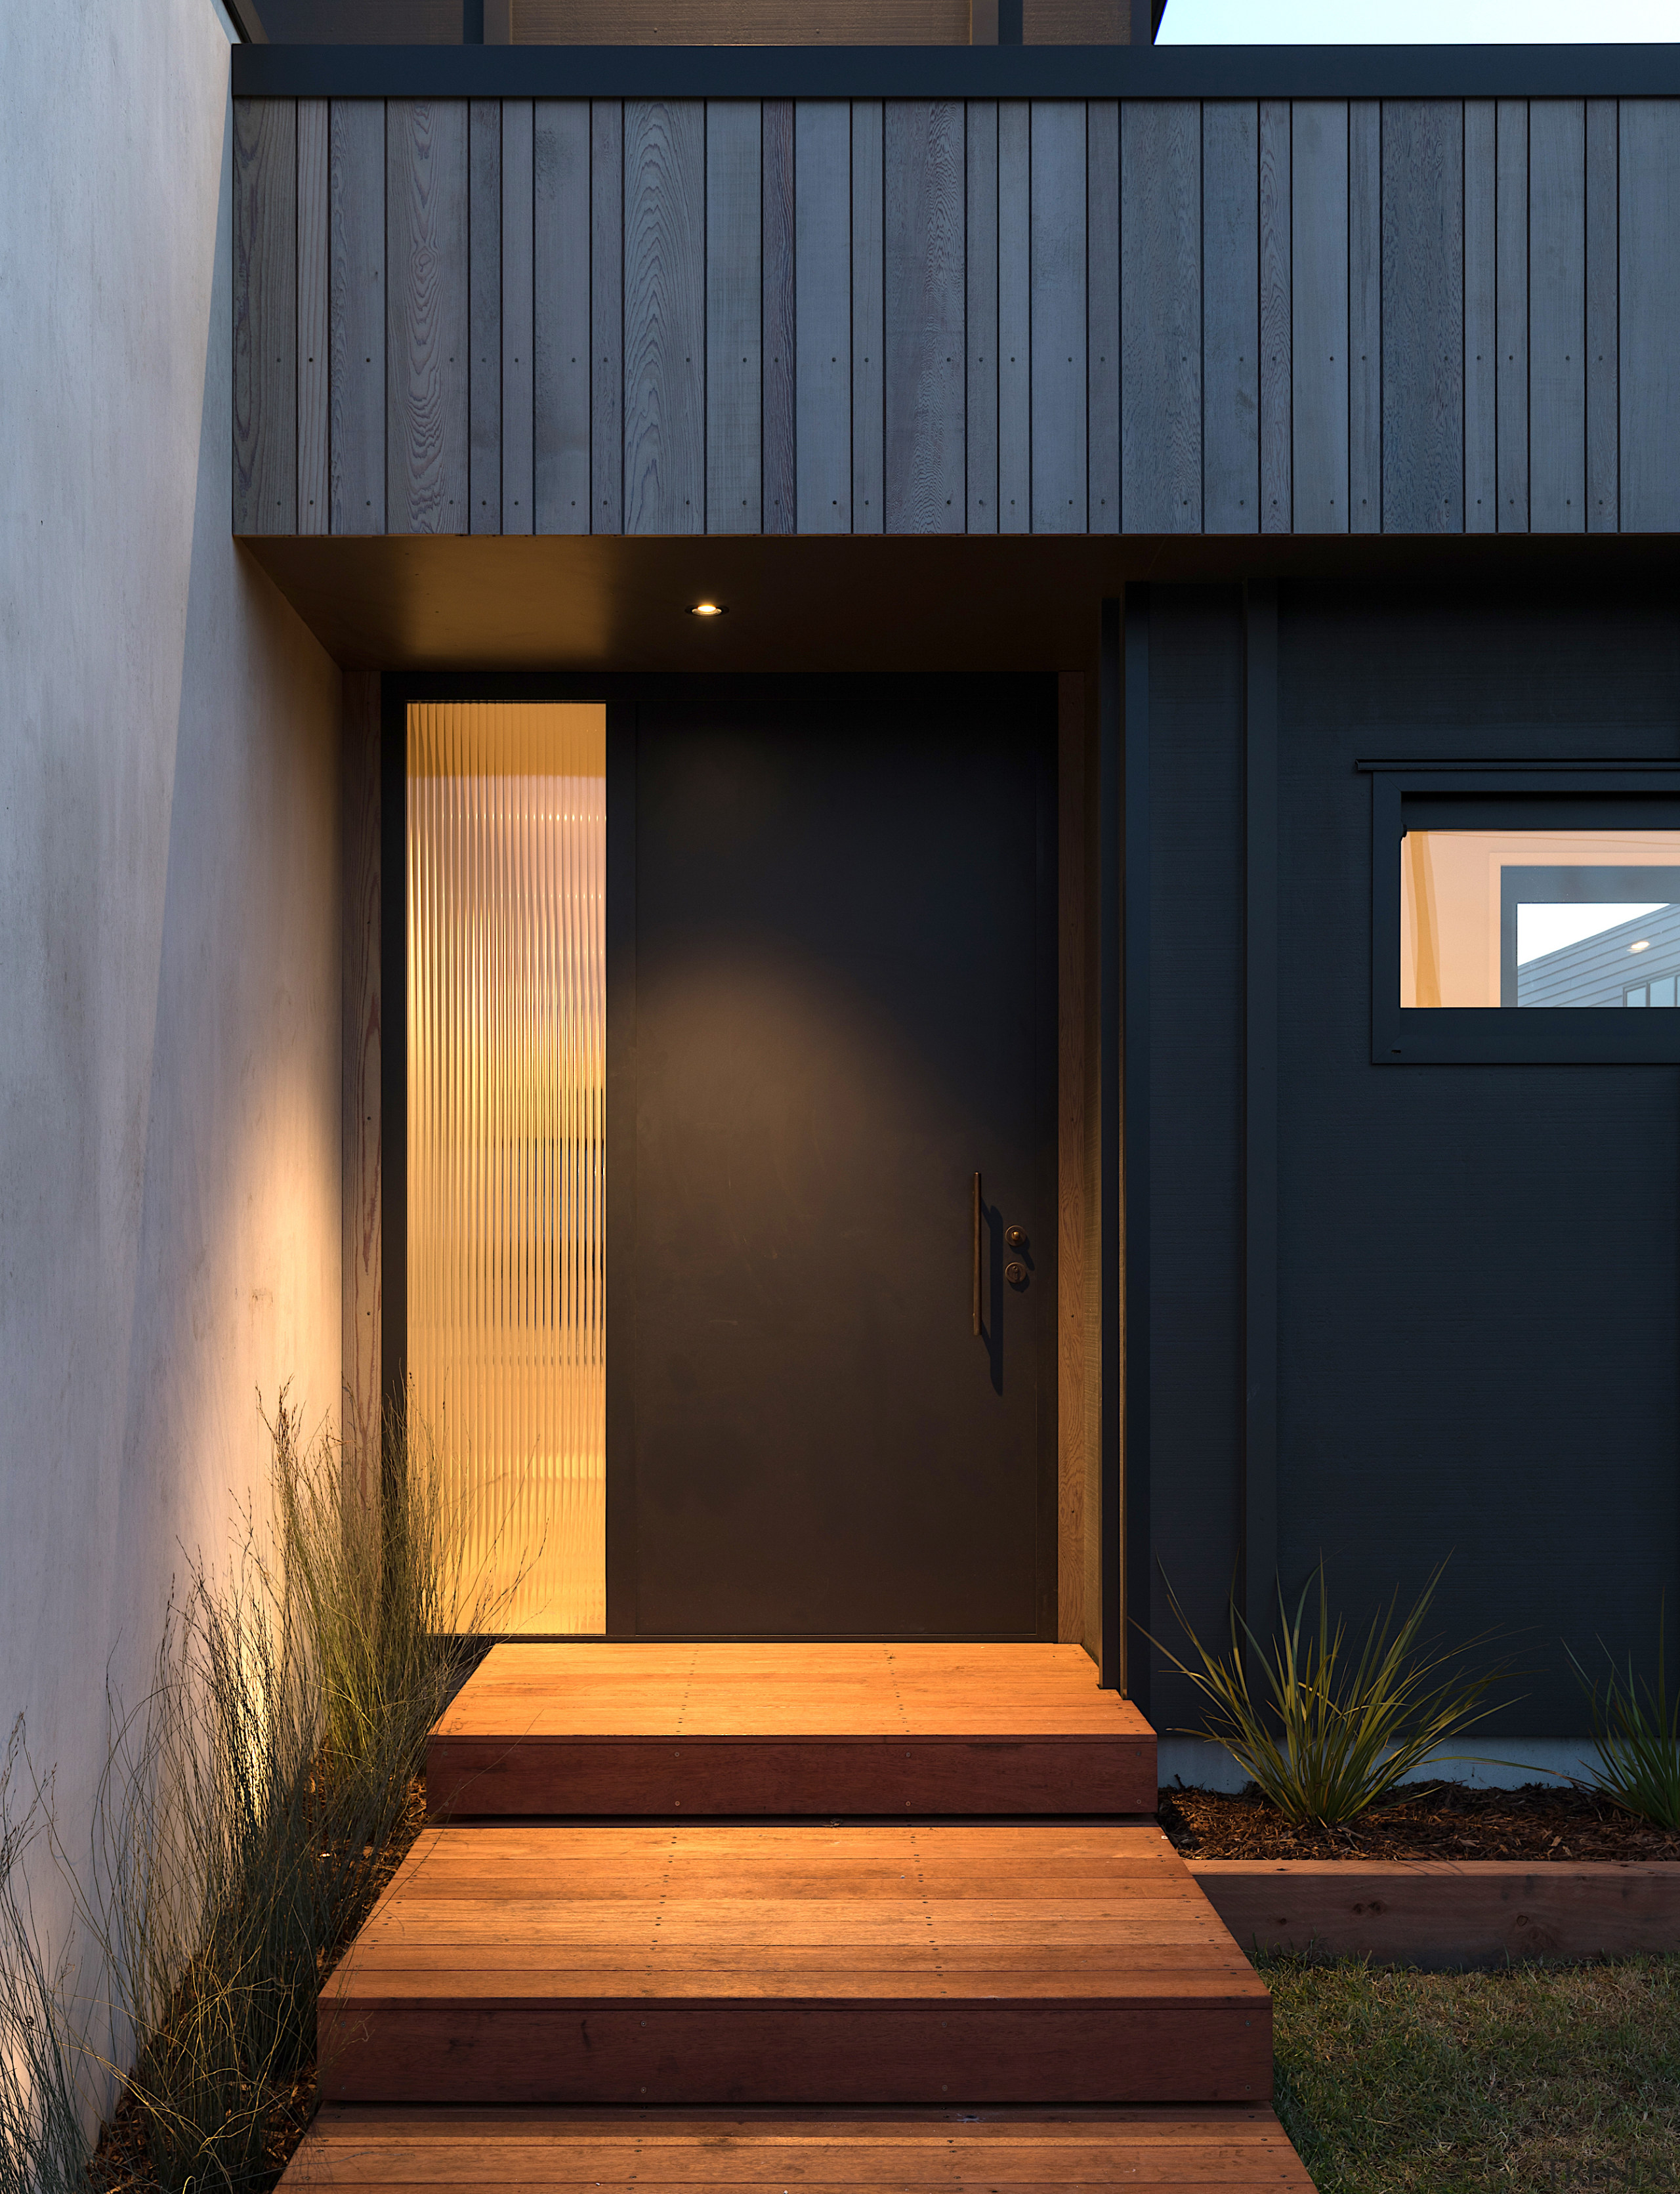 Entry into the home is alongside a concrete